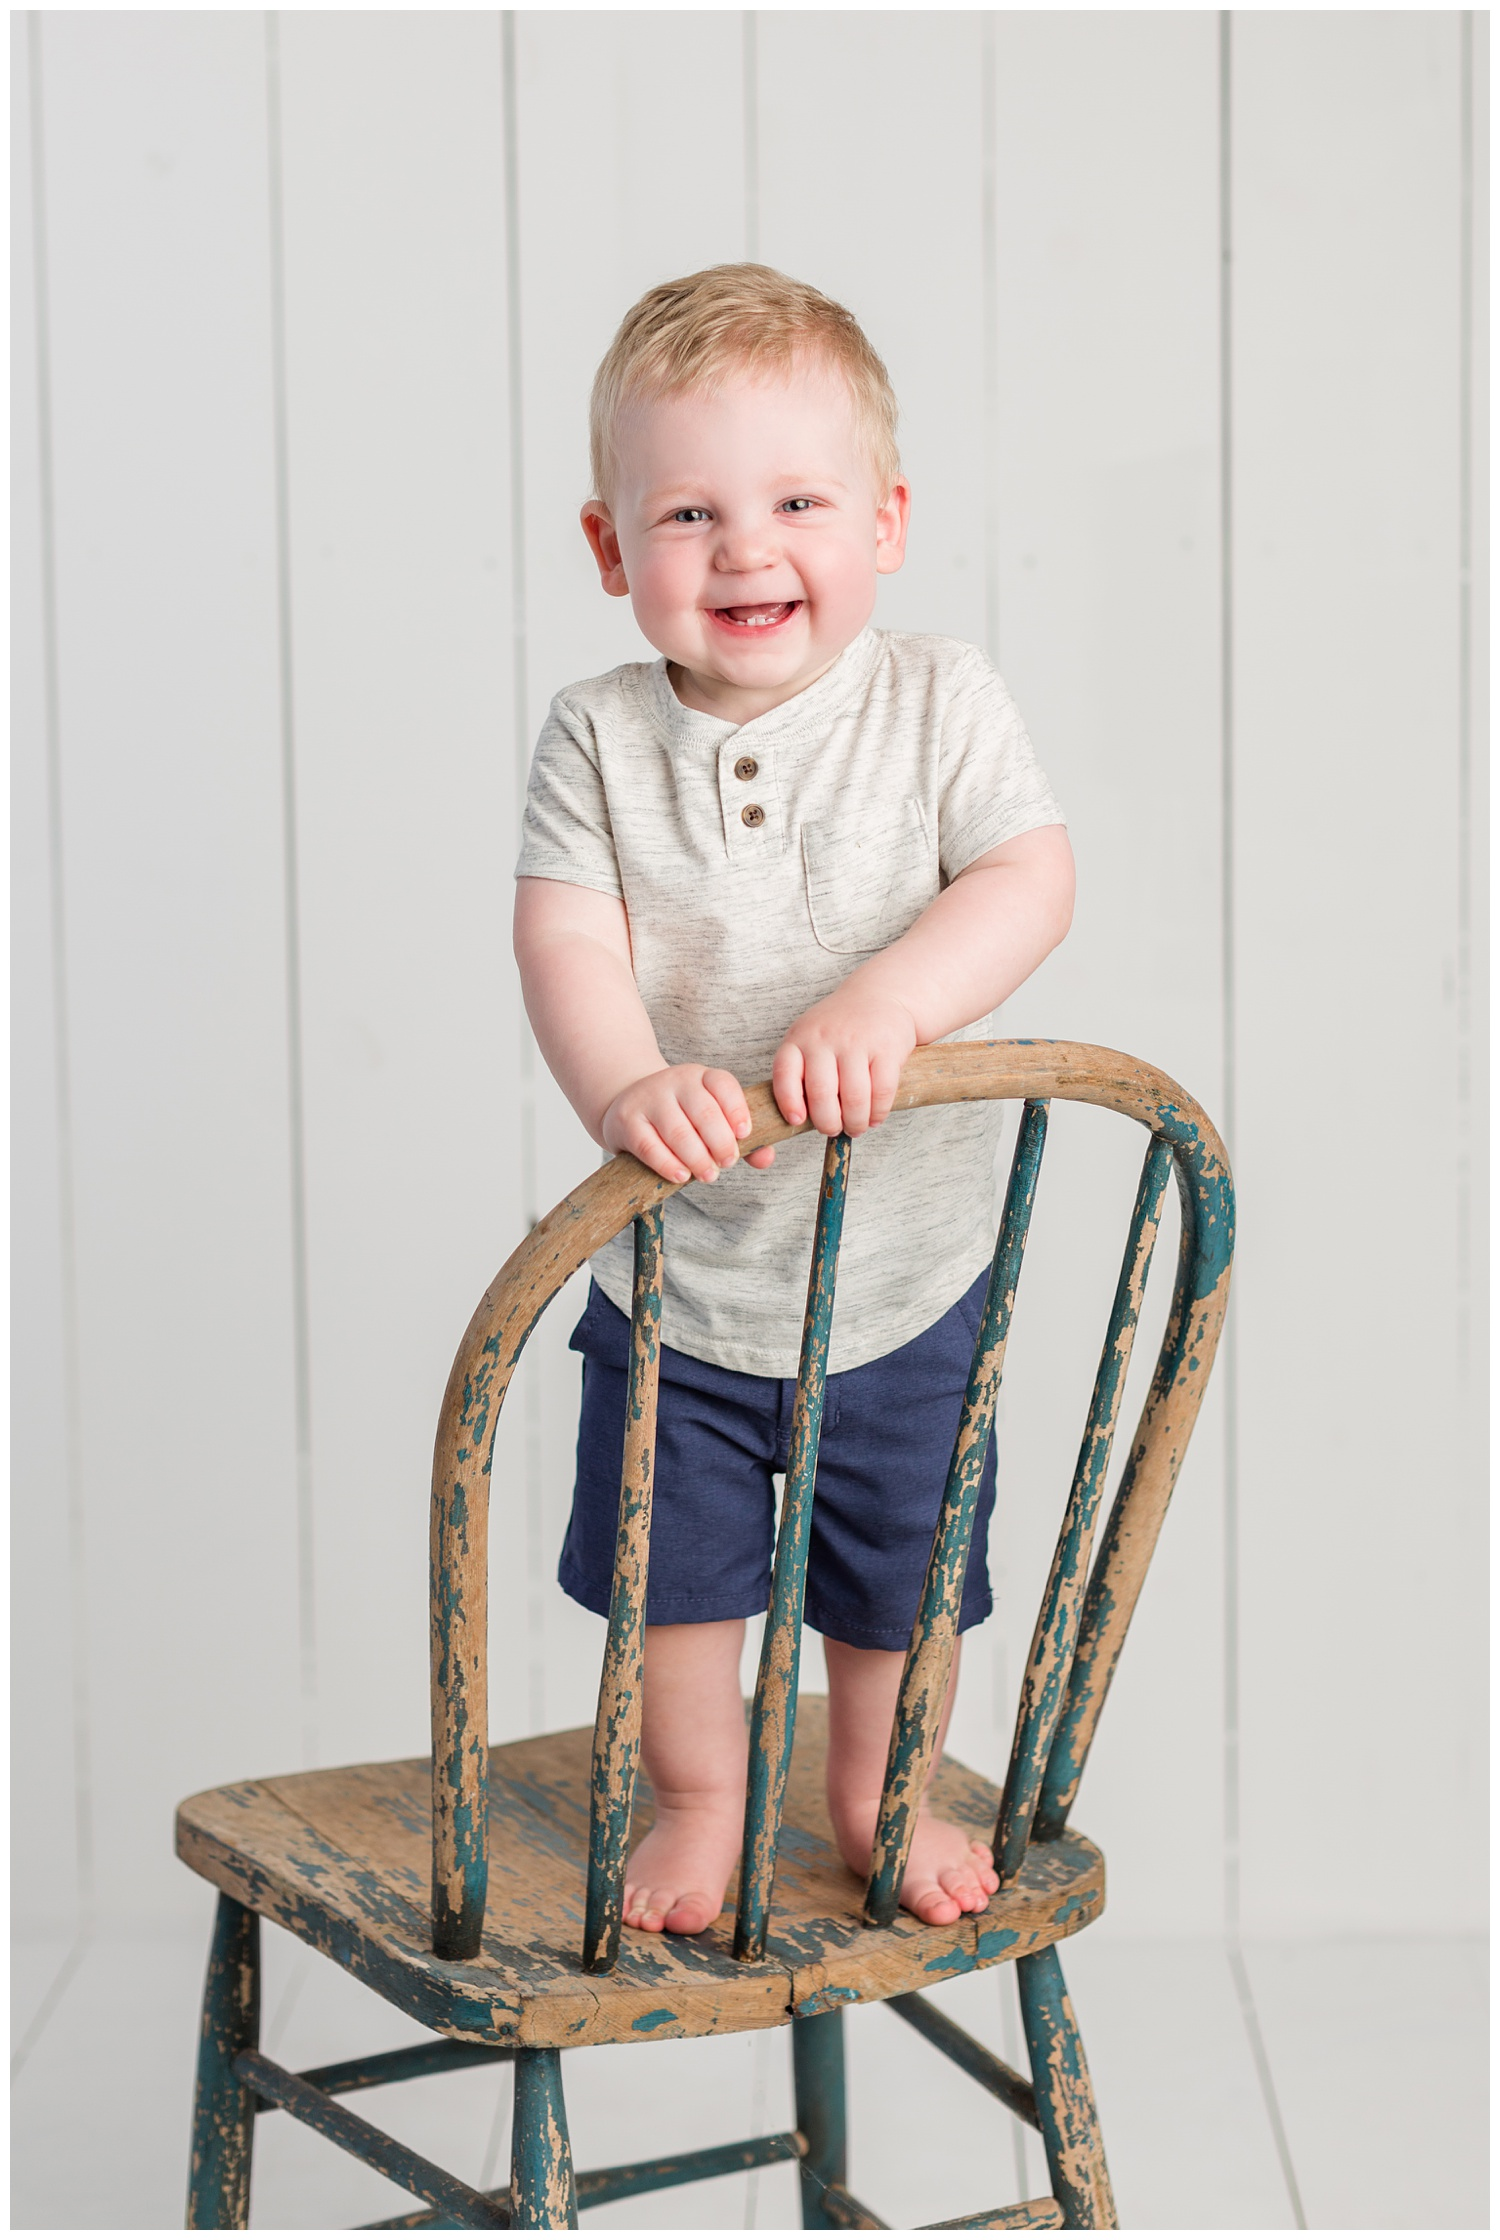 Baby Carter standing on a rustic navy chair wearing a heather gray shirt and navy shorts smiling for his first birthday photo | CB Studio